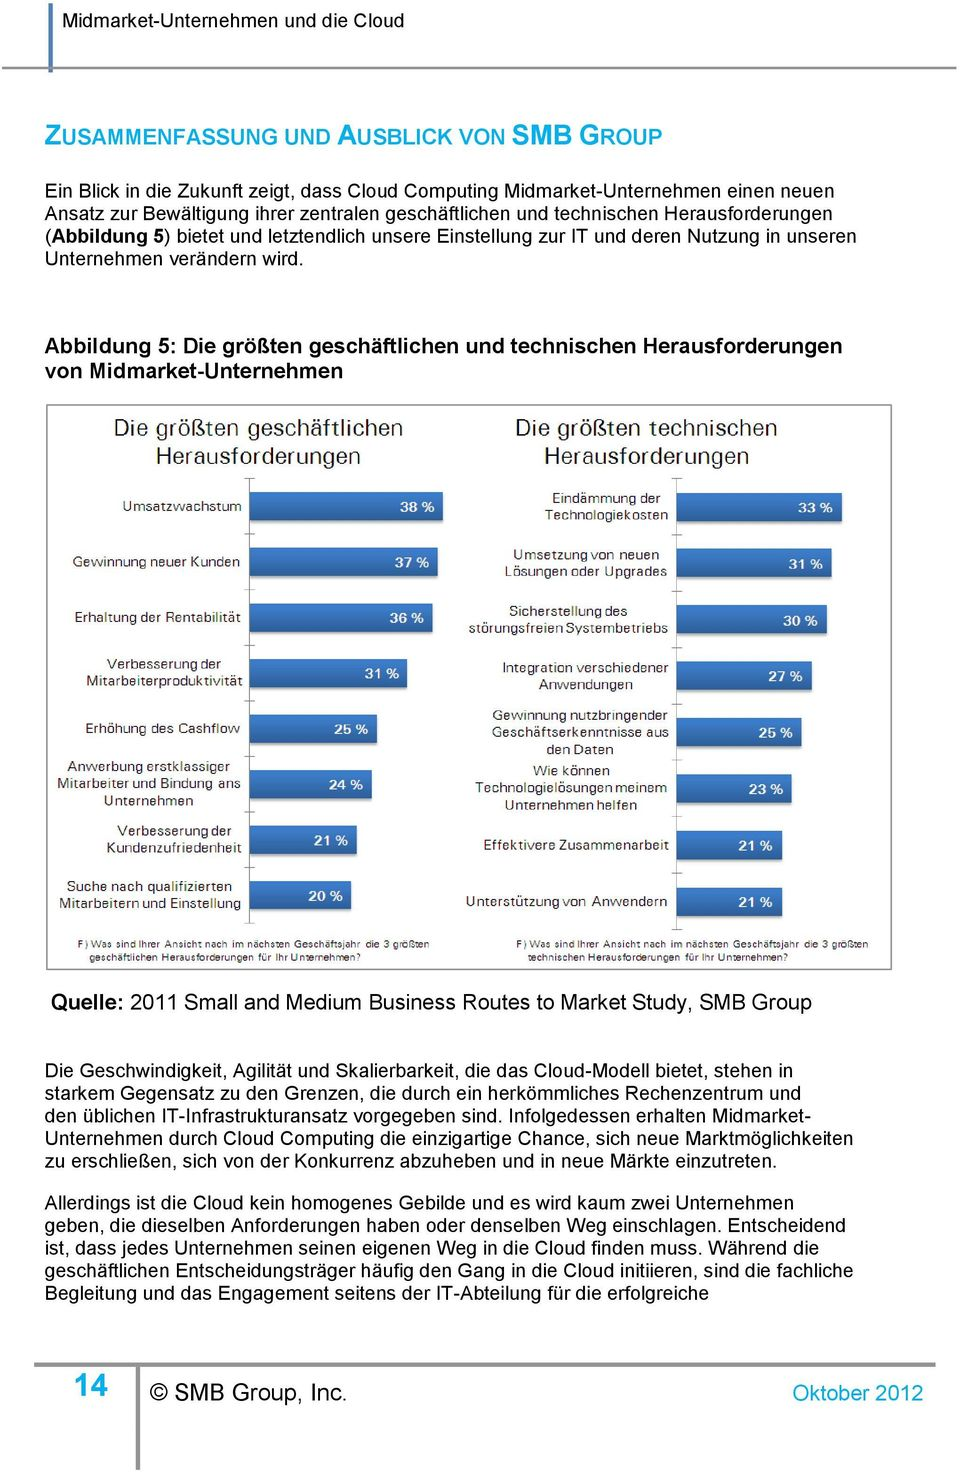 Abbildung 5: Die größten geschäftlichen und technischen Herausforderungen von Midmarket-Unternehmen Quelle: 2011 Small and Medium Business Routes to Market Study, SMB Group Die Geschwindigkeit,